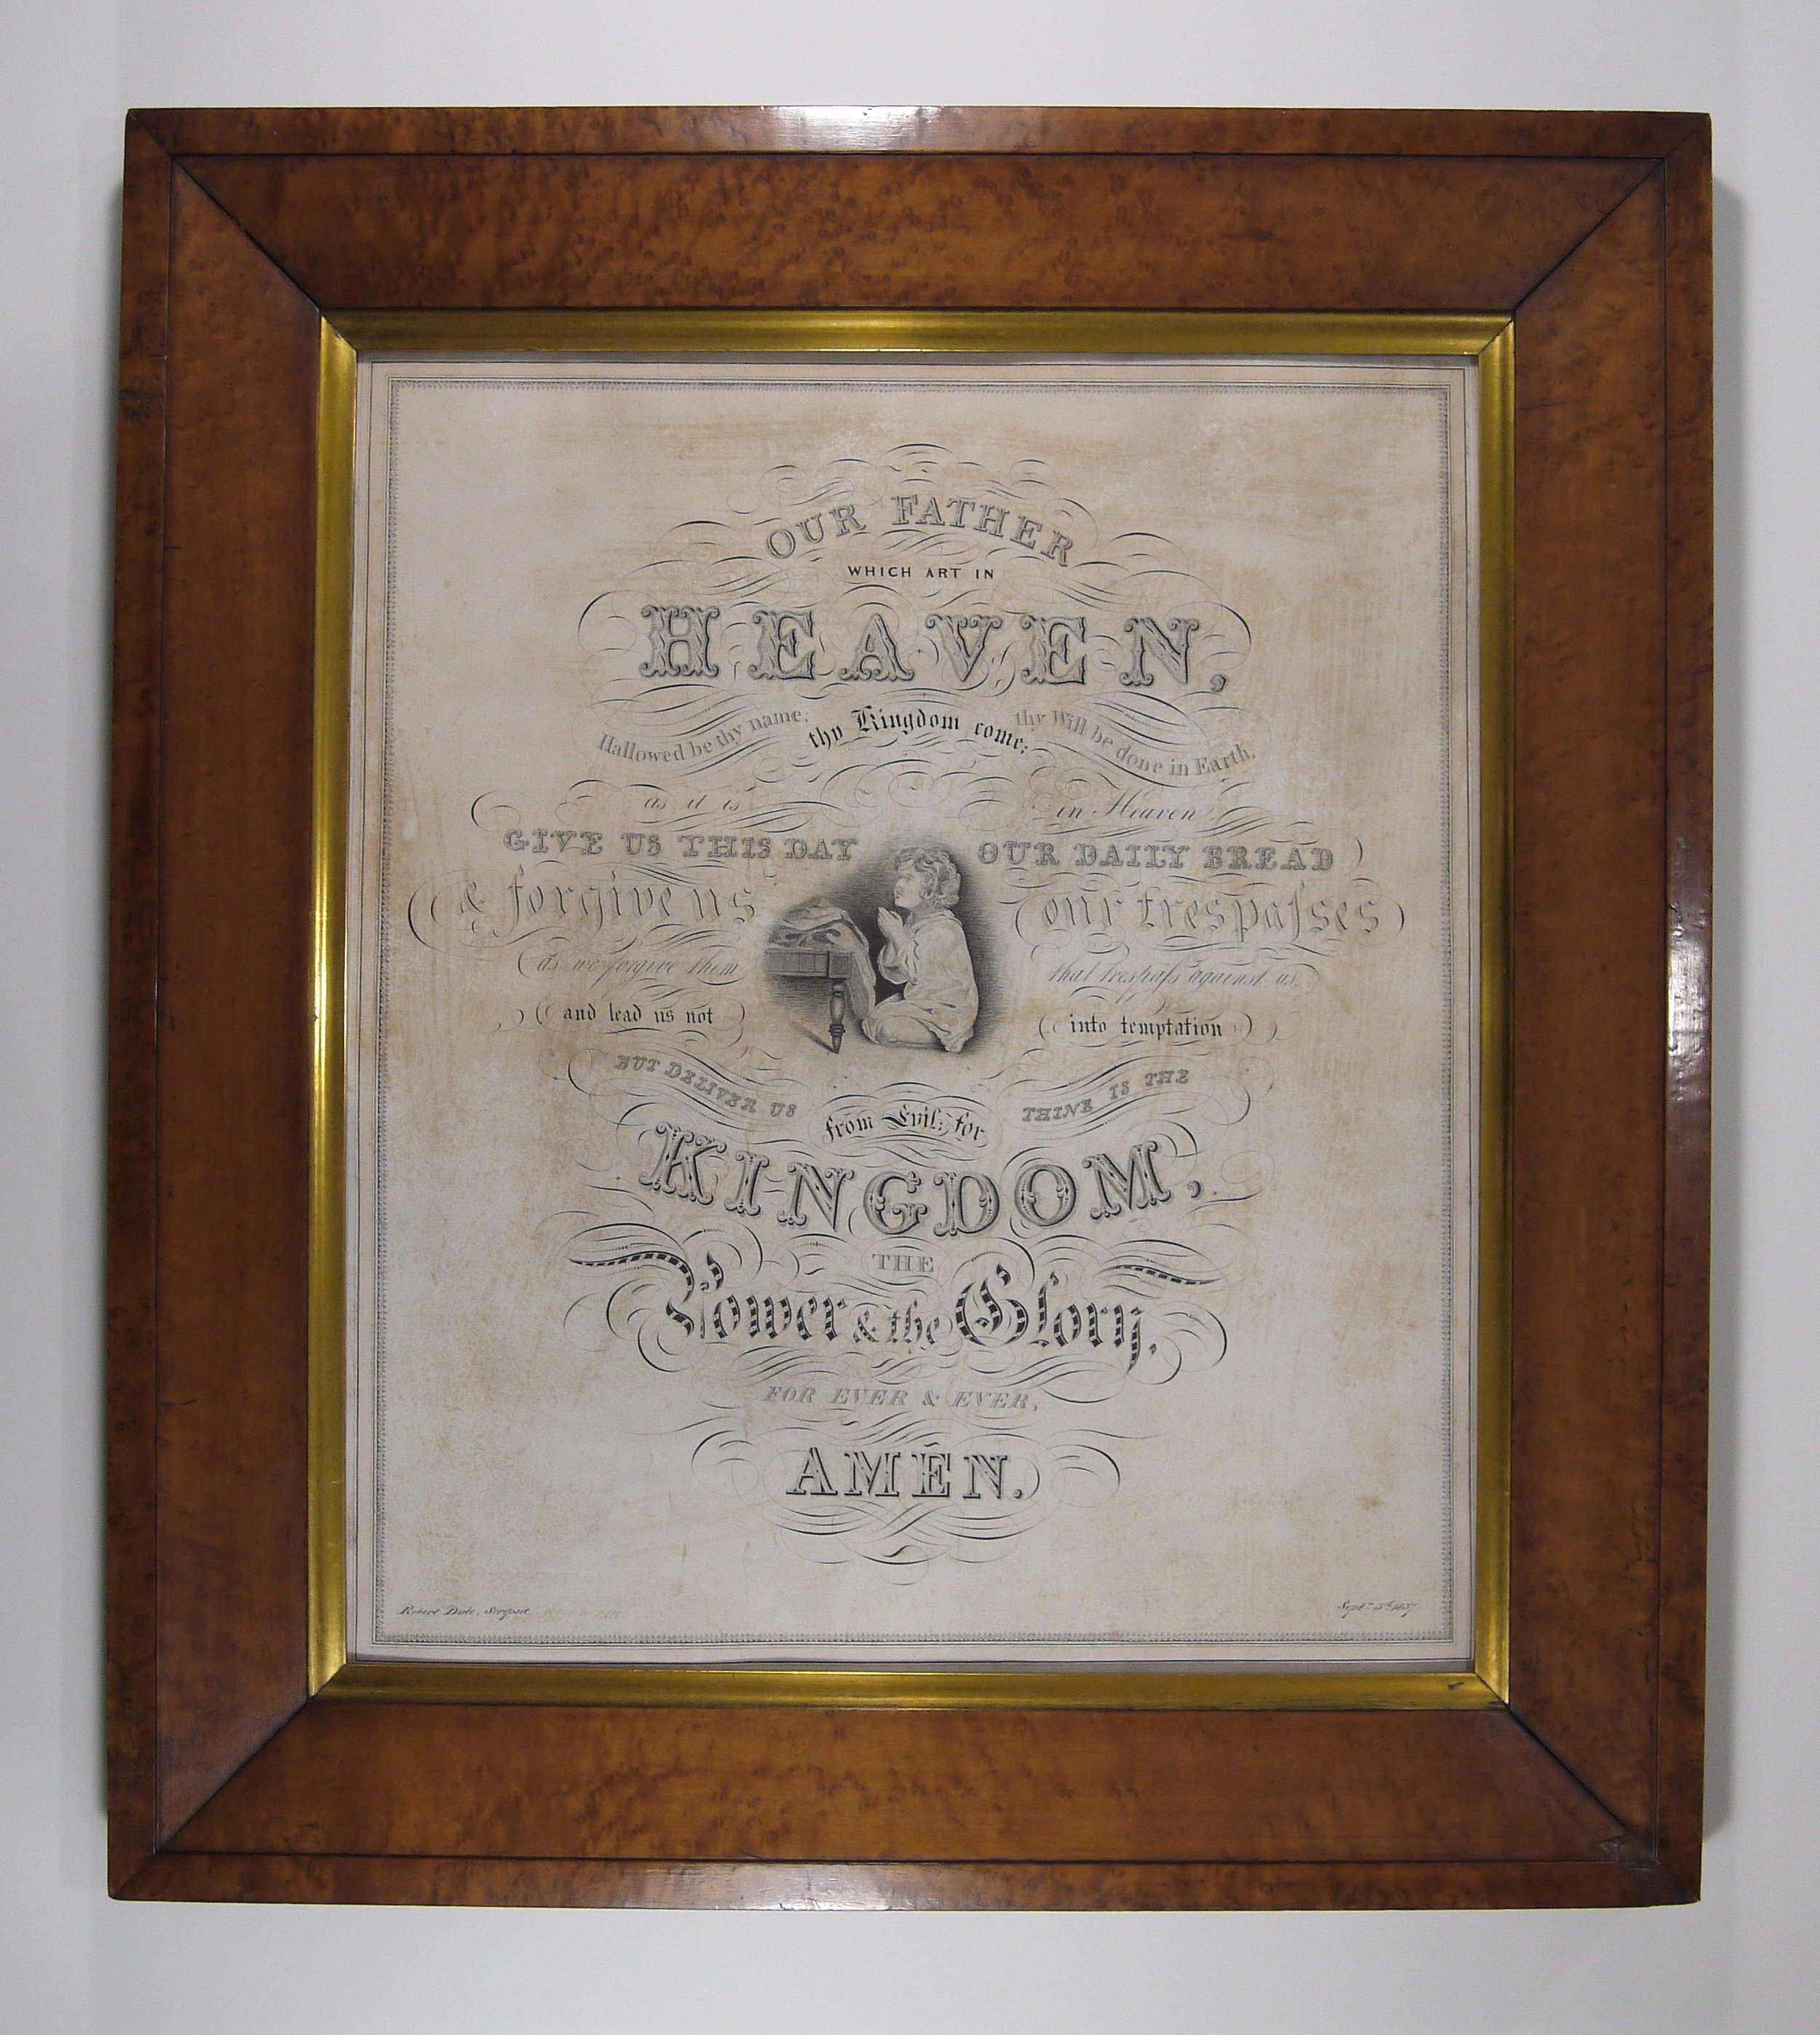 The drawing after conservation treatment, in it's original period frame.